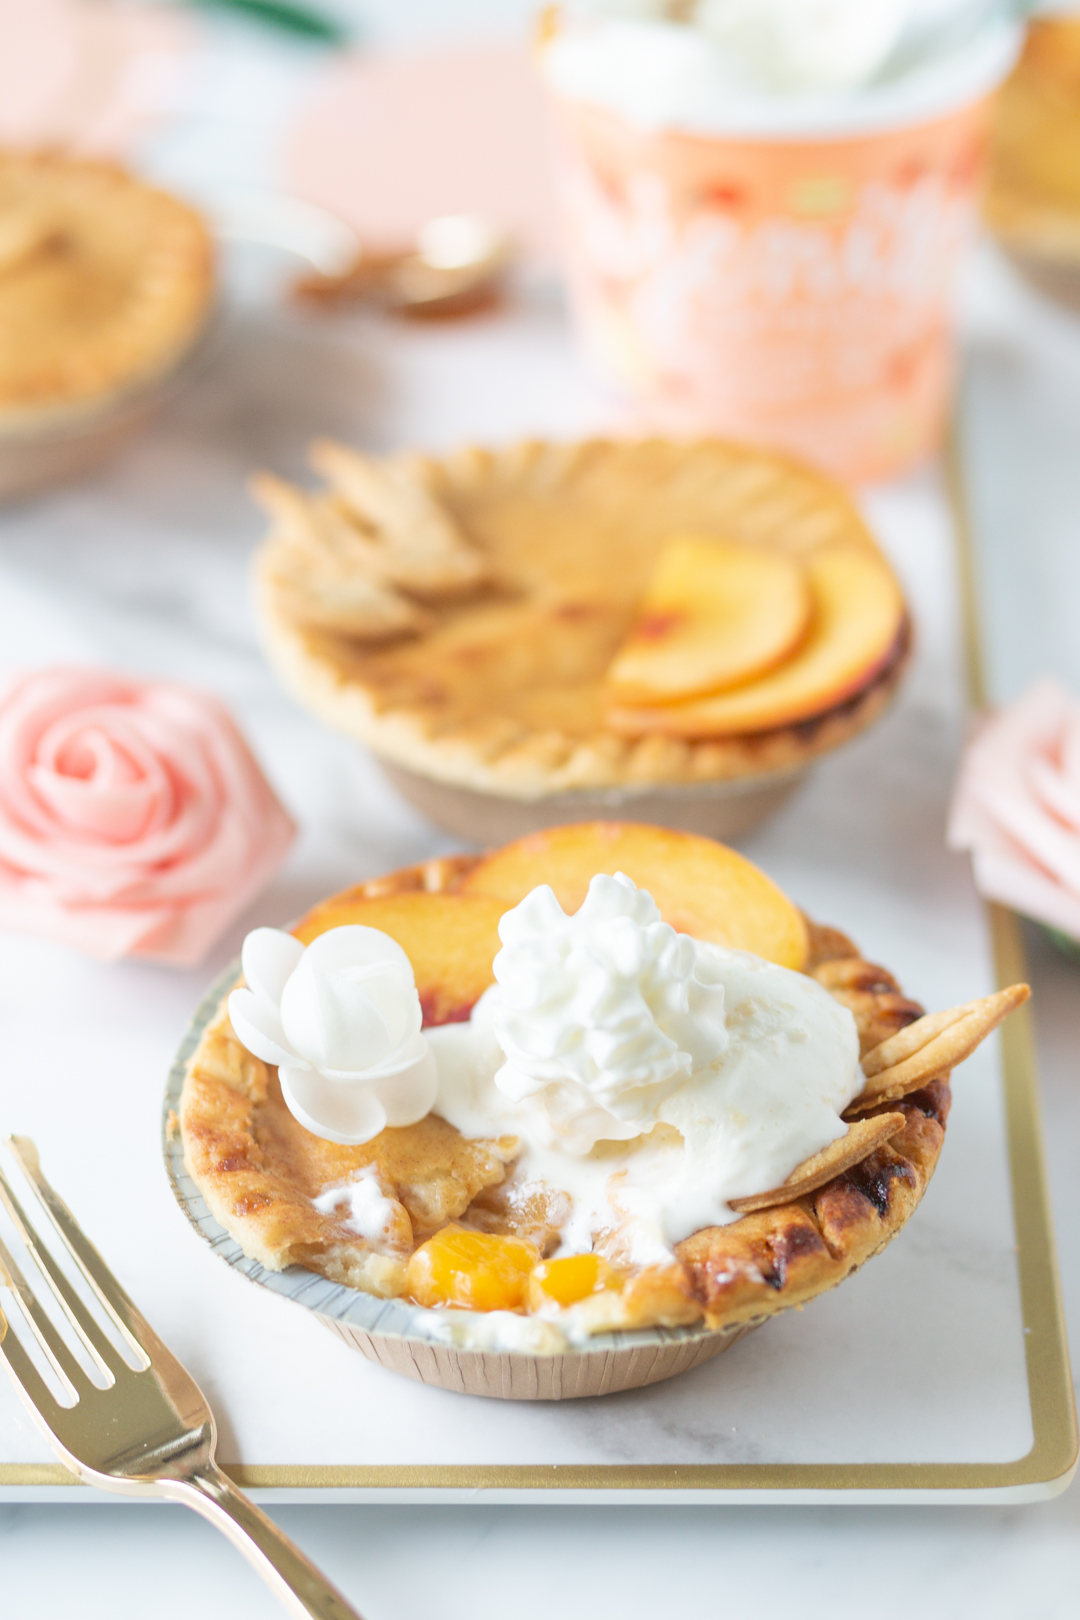 mini peach pie with ice cream and whipped cream on top.